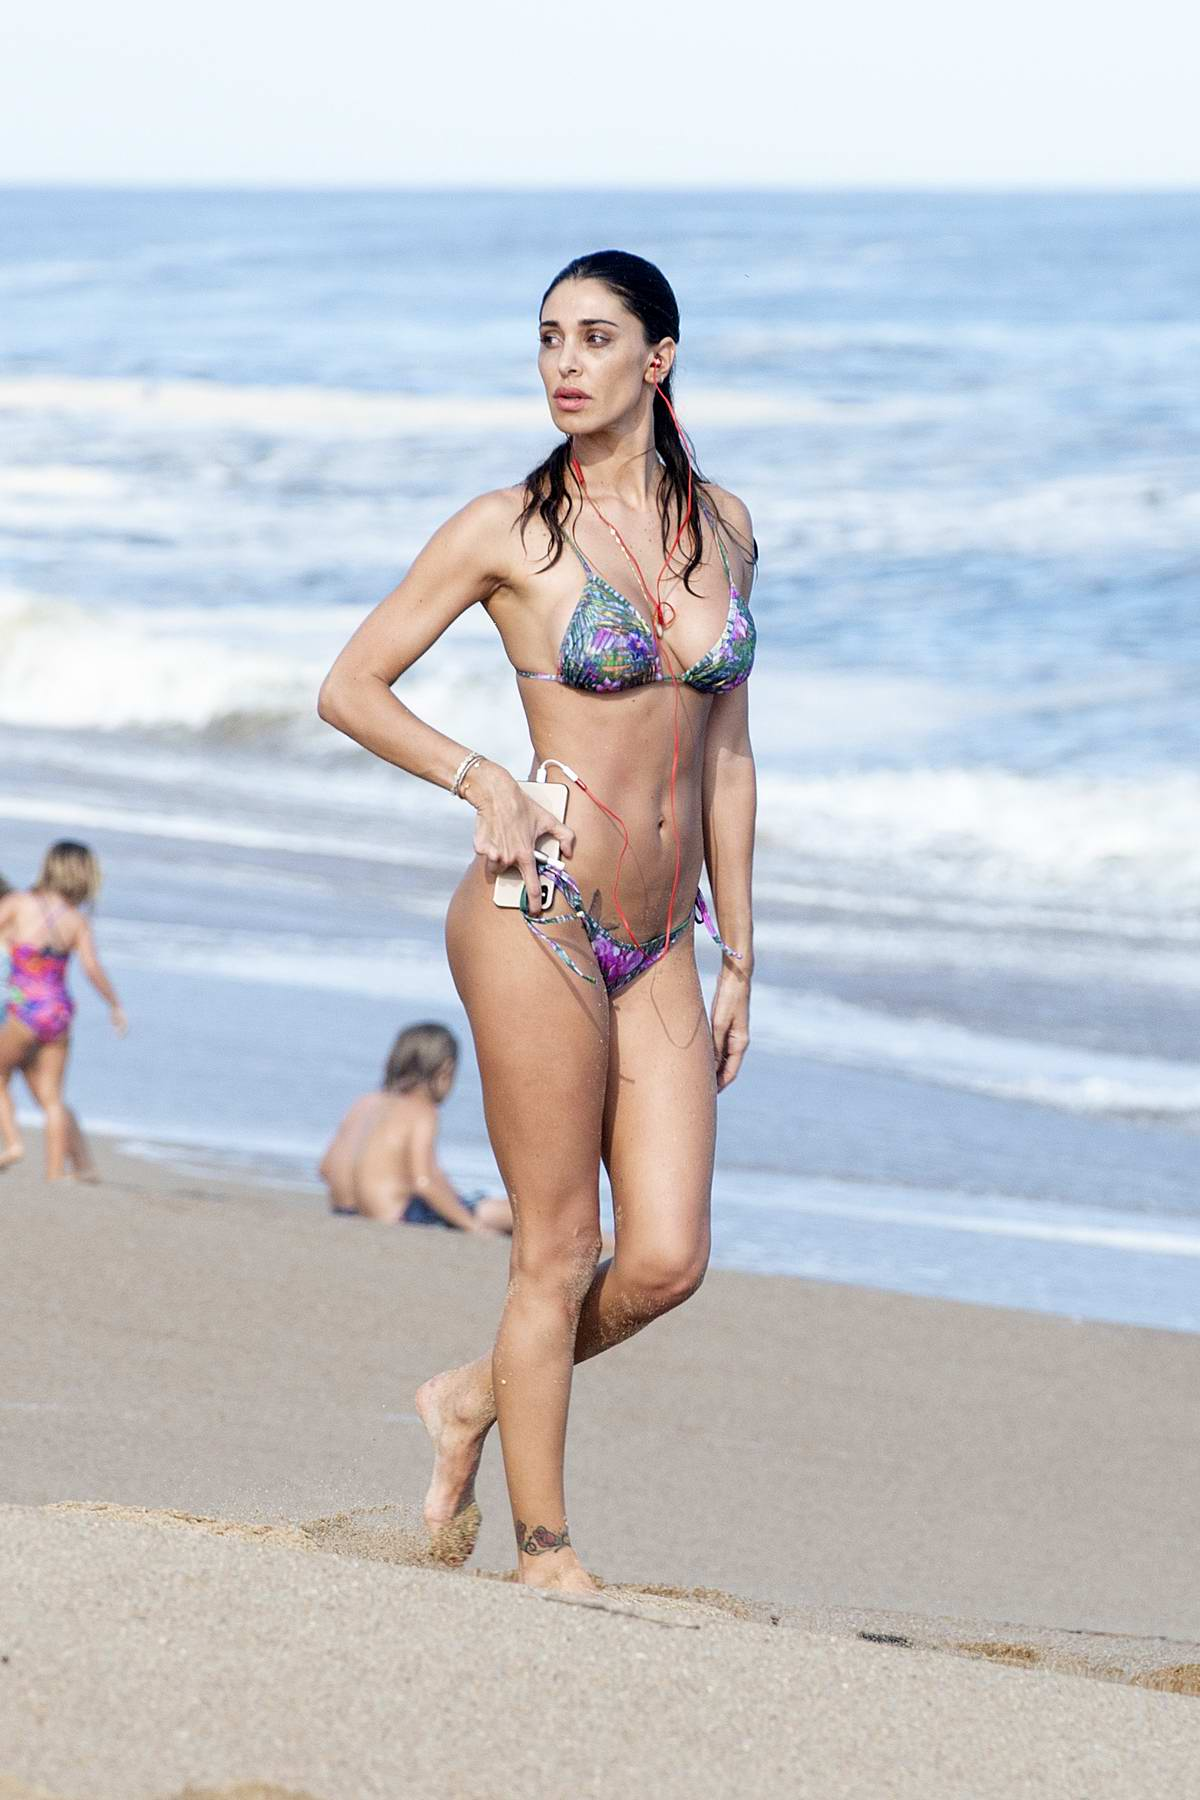 Belen Rodriguez shows off her beach body in a colorful print bikini during her vacation in Uruguay